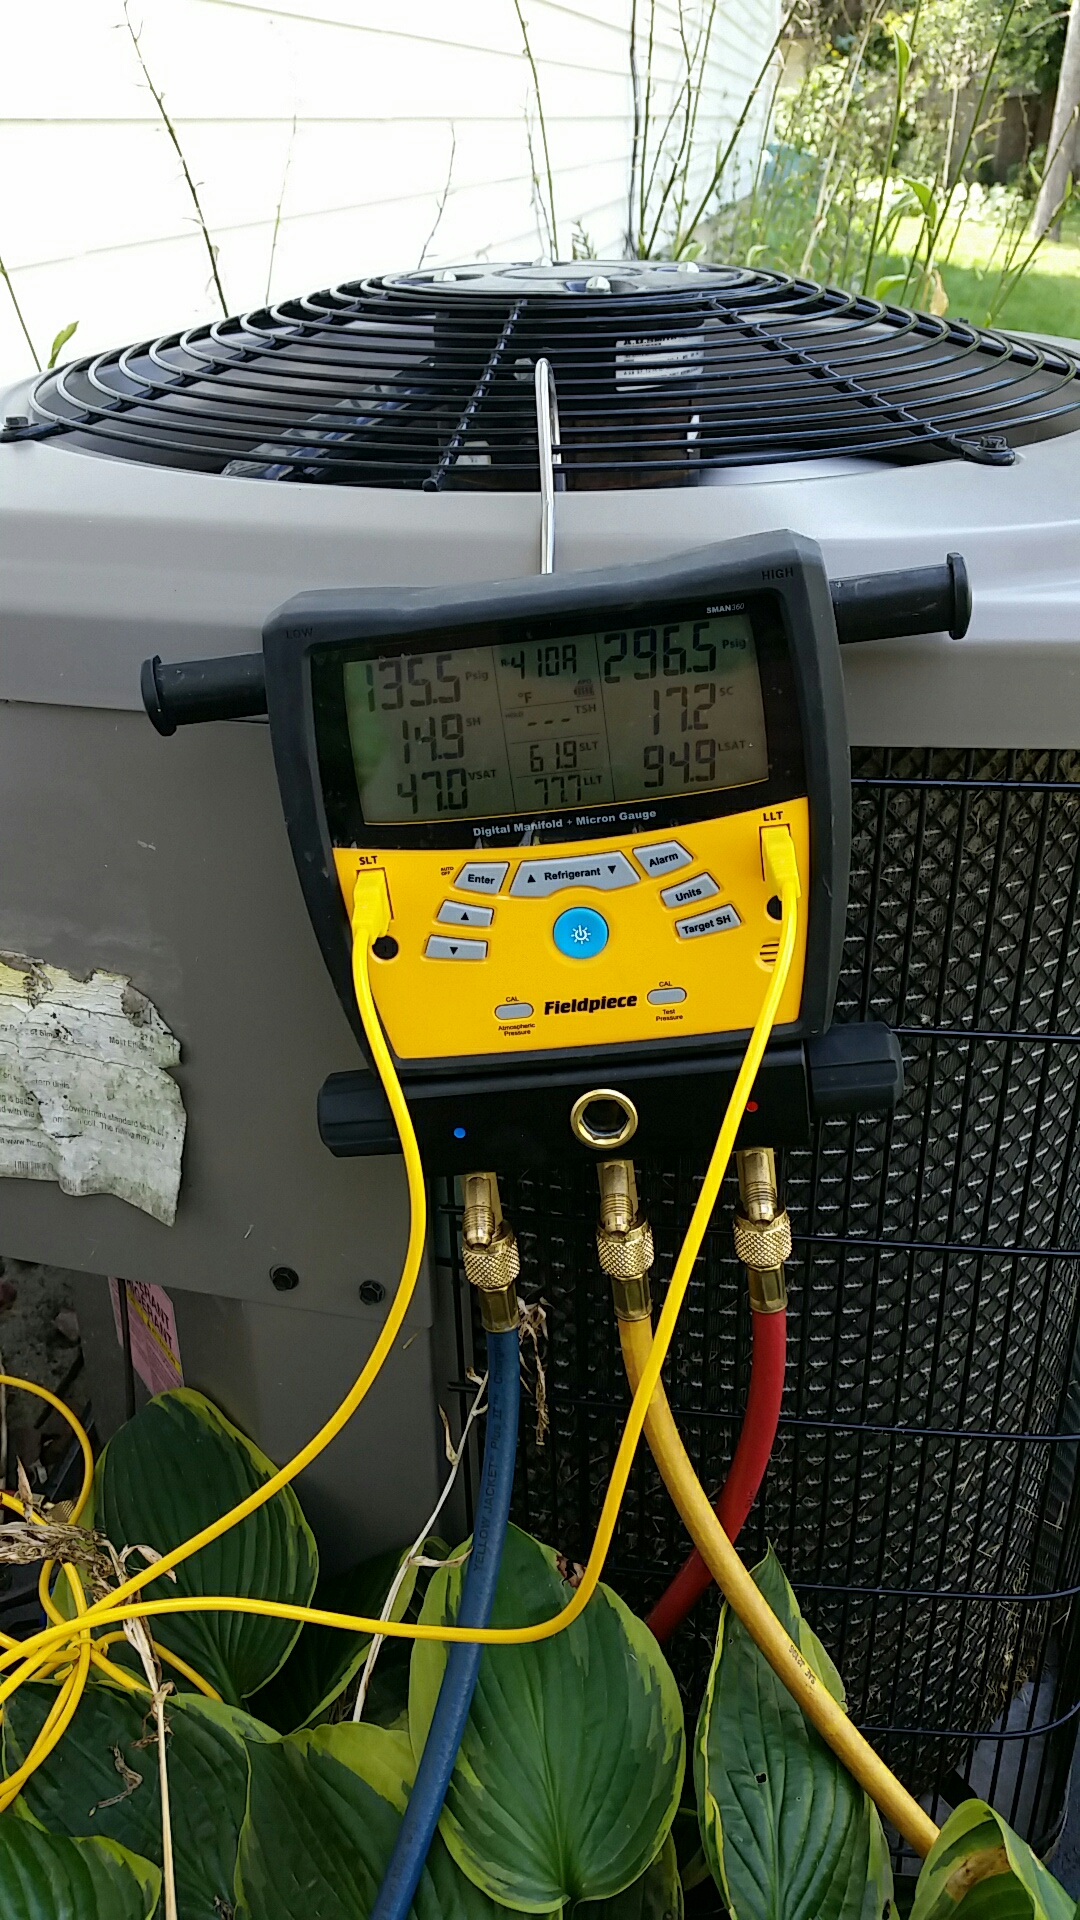 Clinton, WI - A/C unit was frosting/icing up due to being low on Refridgerant.  Tightened Piston nut and added proper charge.